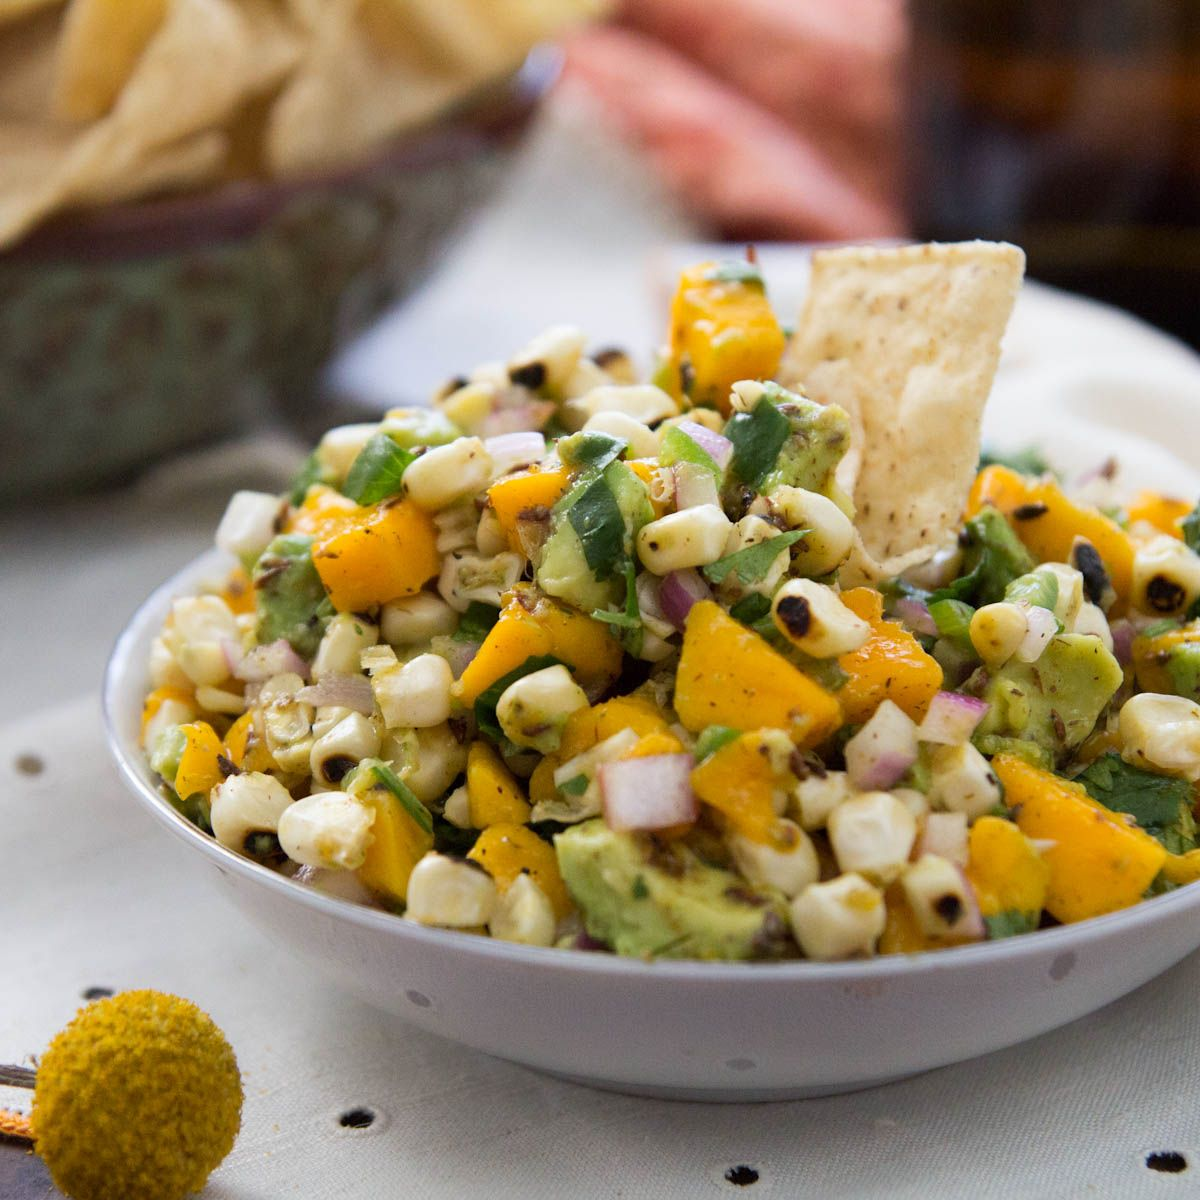 ... Bluegrass Jam Barbecue and Mango Avocado and Corn Salsa - Indiaphile